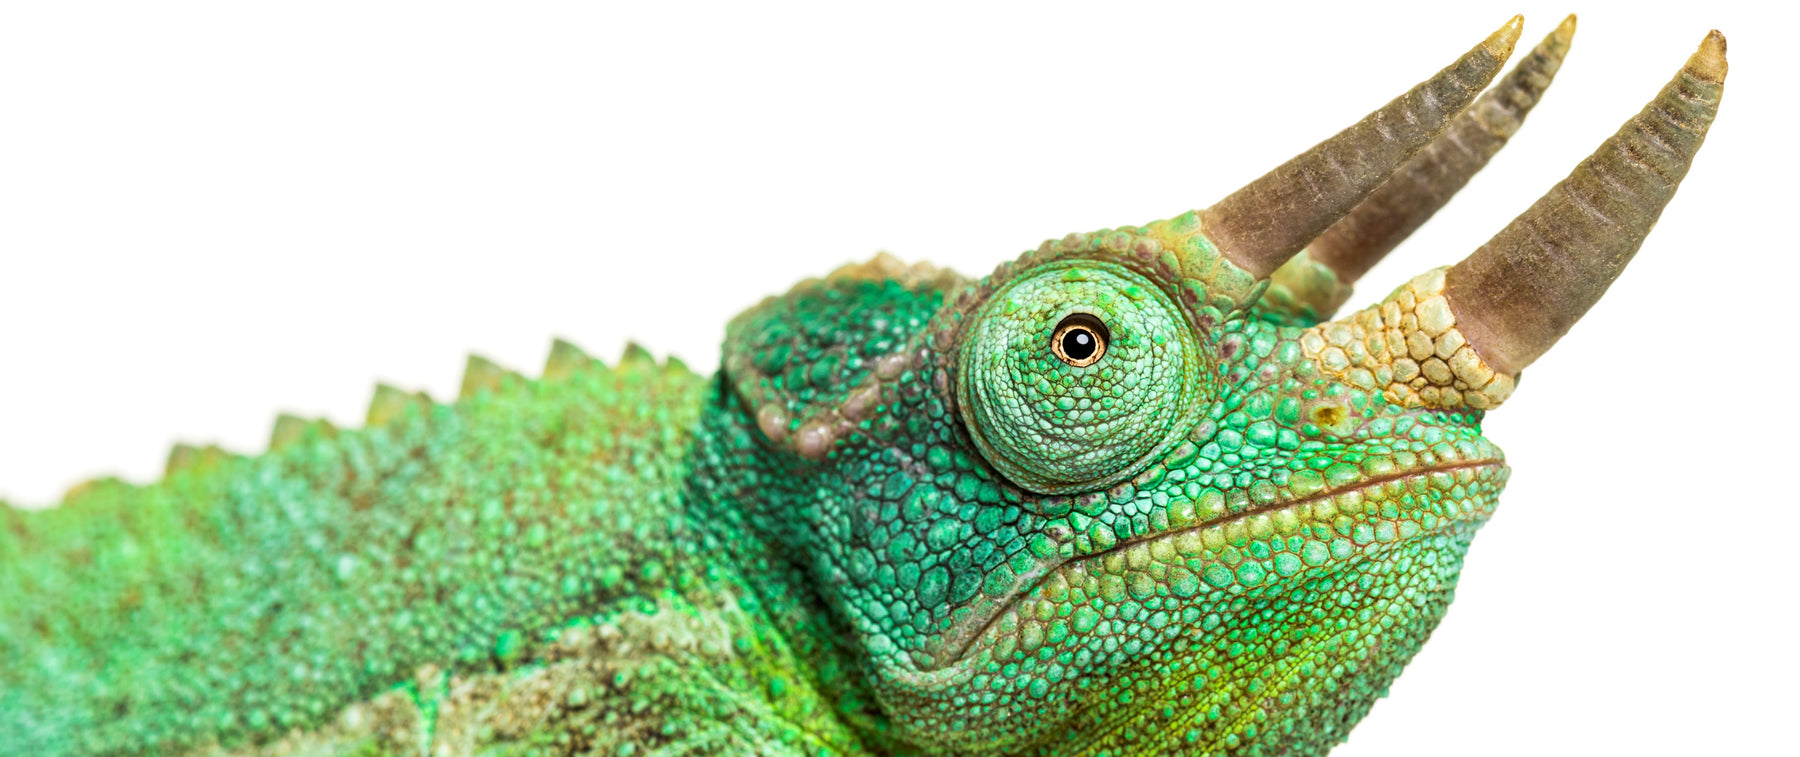 What Do Jackson's Chameleon Eat?